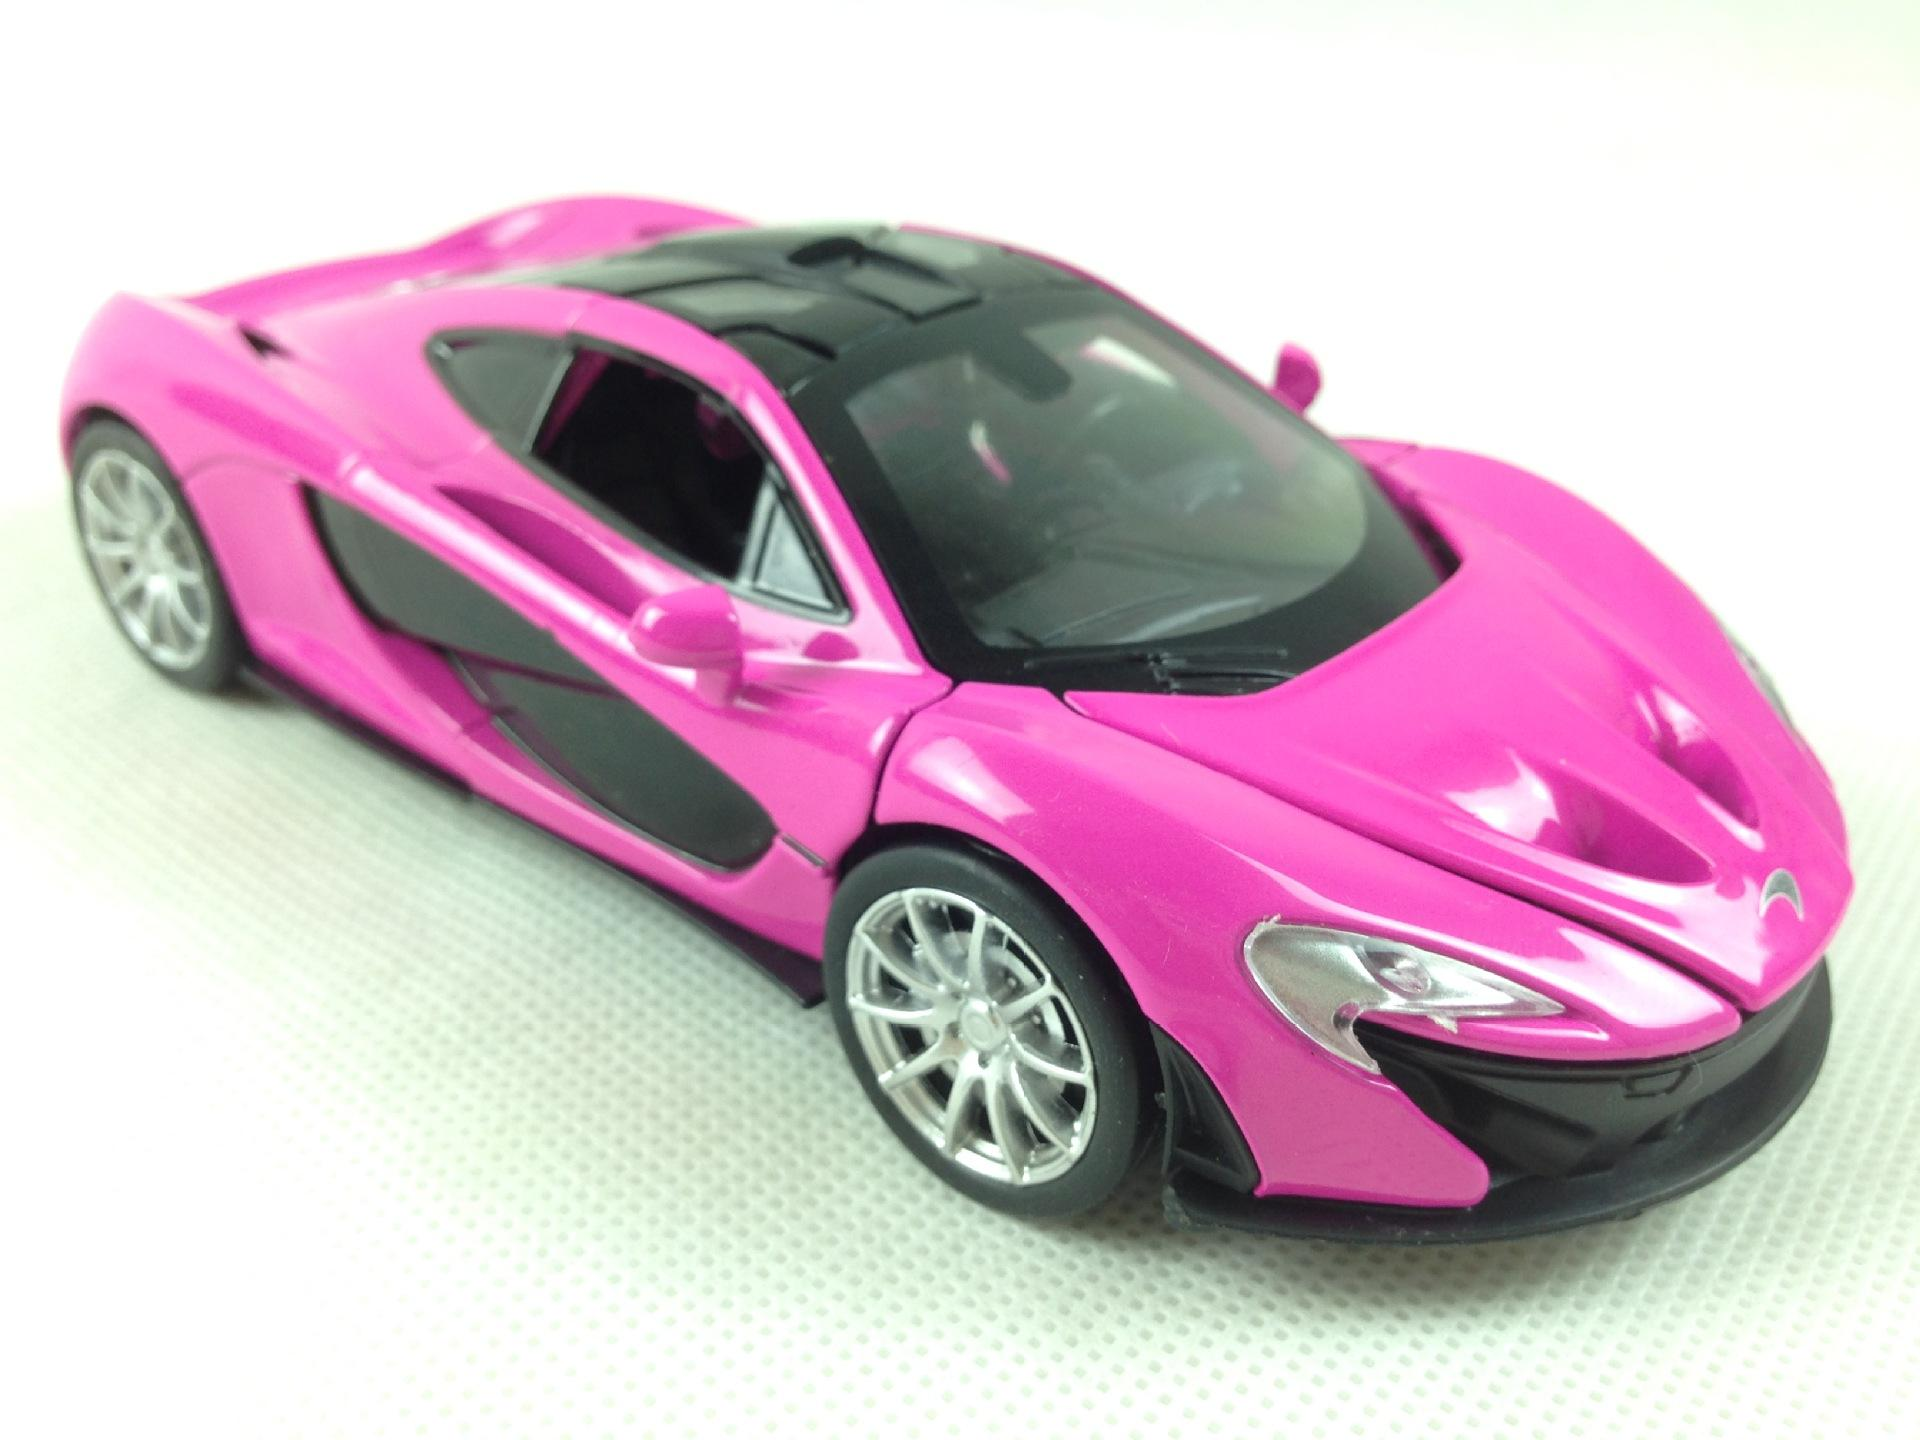 132 mclaren super car model alloy diecast car toy high quality model car with sound and light for your choice car model mclaren car model surper car model